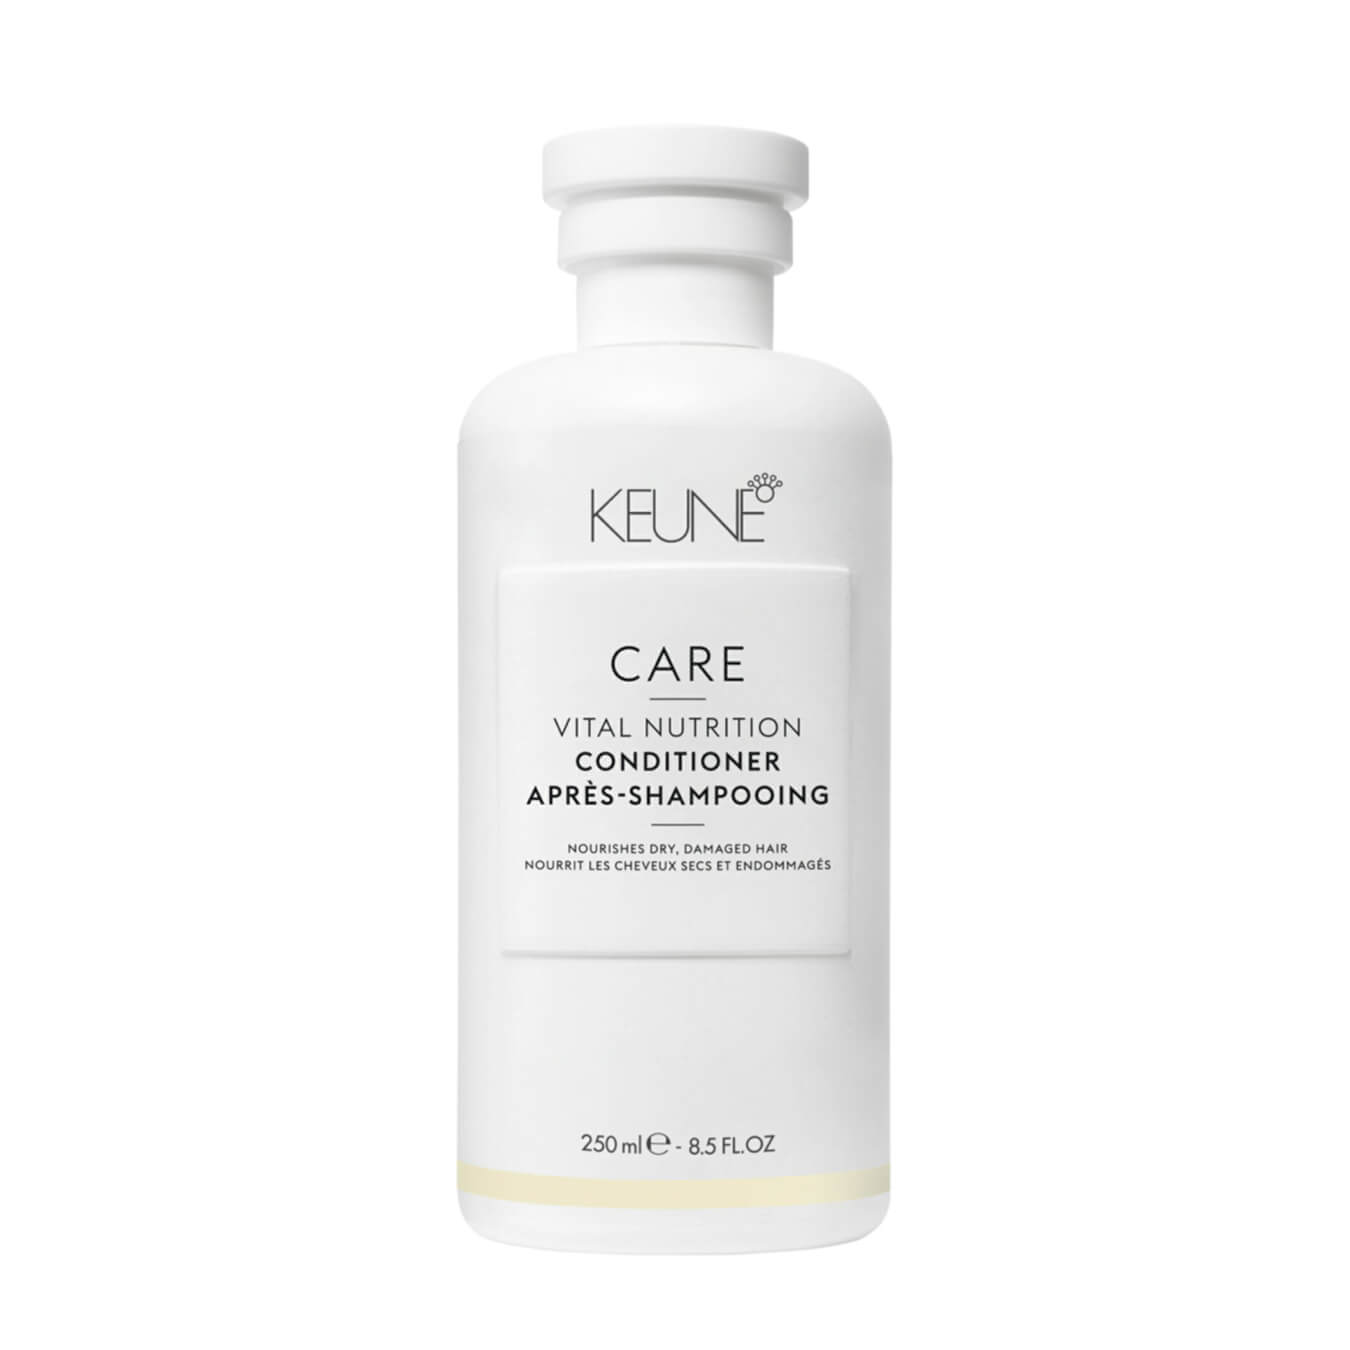 Koop Keune Care Vital Nutrition Conditioner 250ml